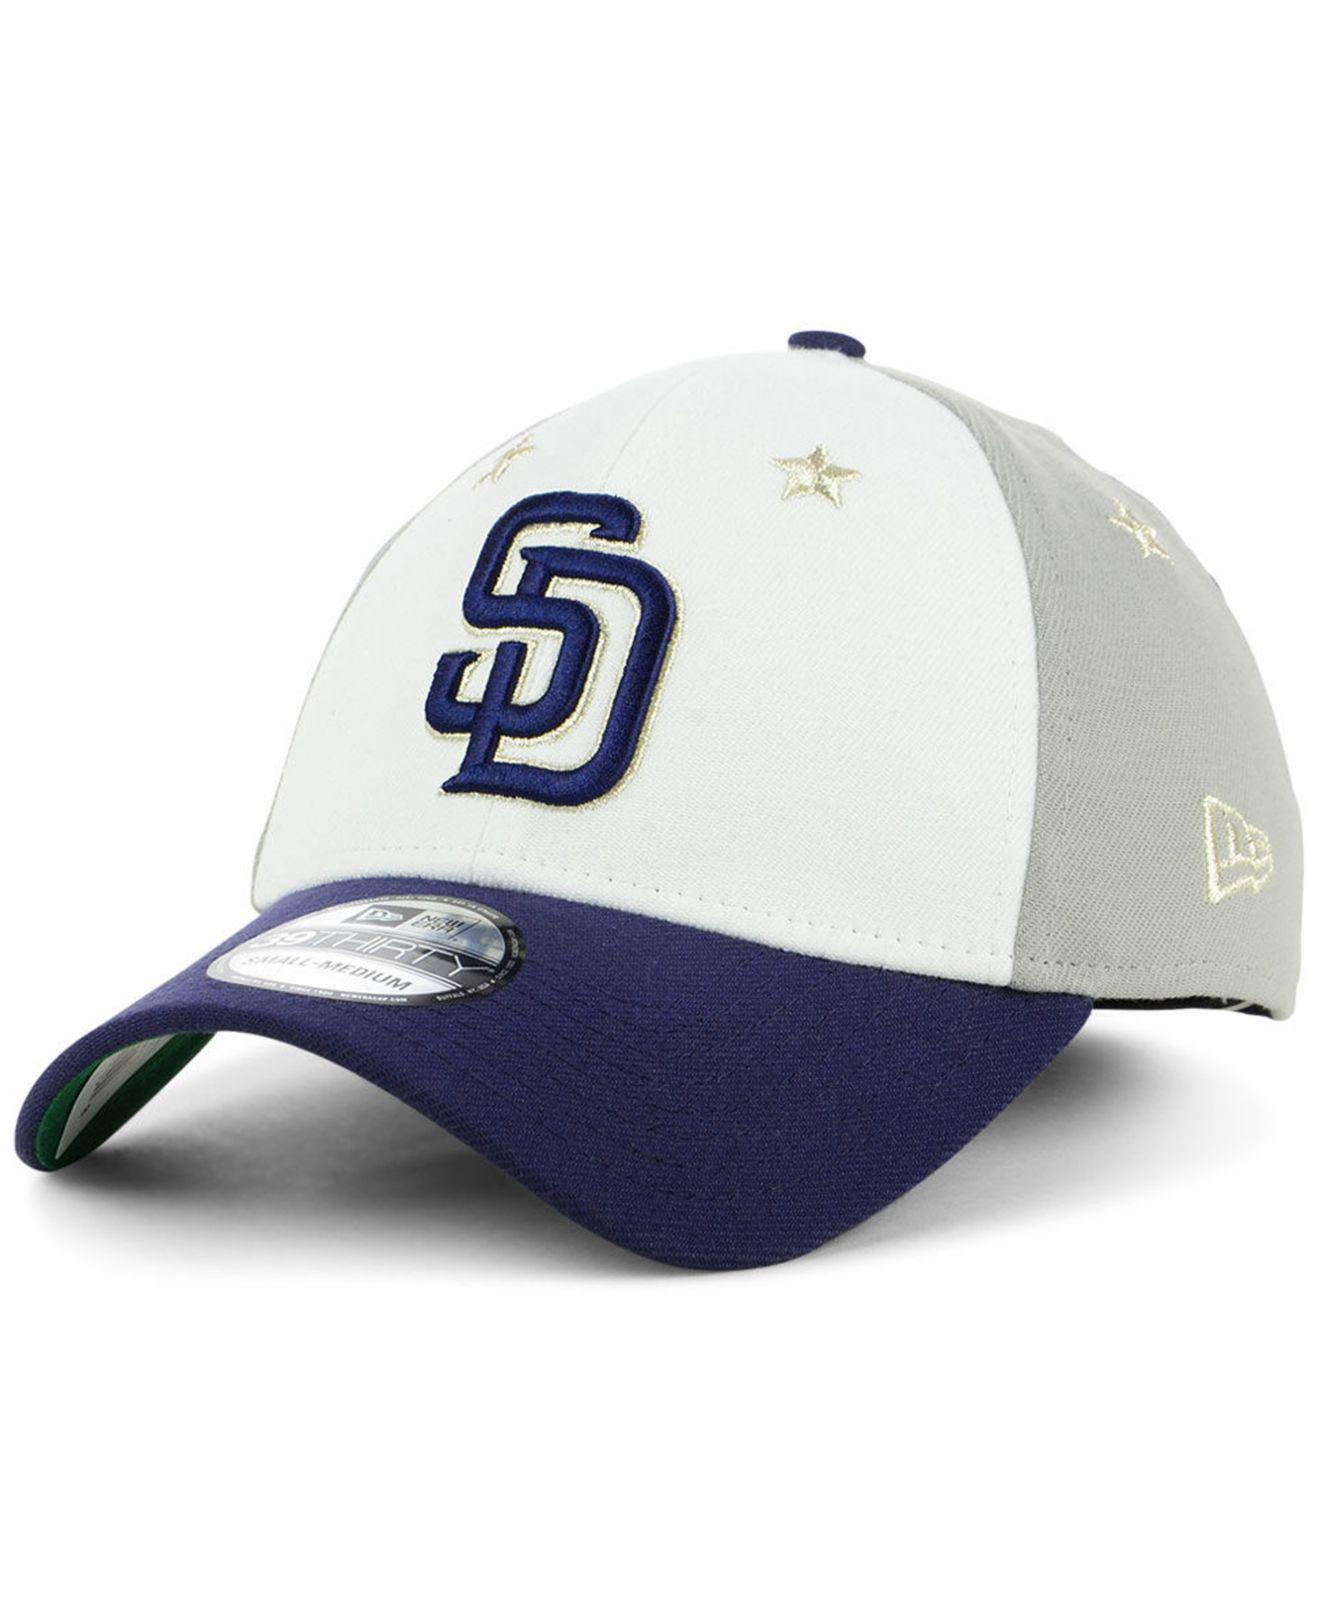 832c254deb2 ... best price san diego padres all star game 39thirty stretch fitted cap  2018 for men.